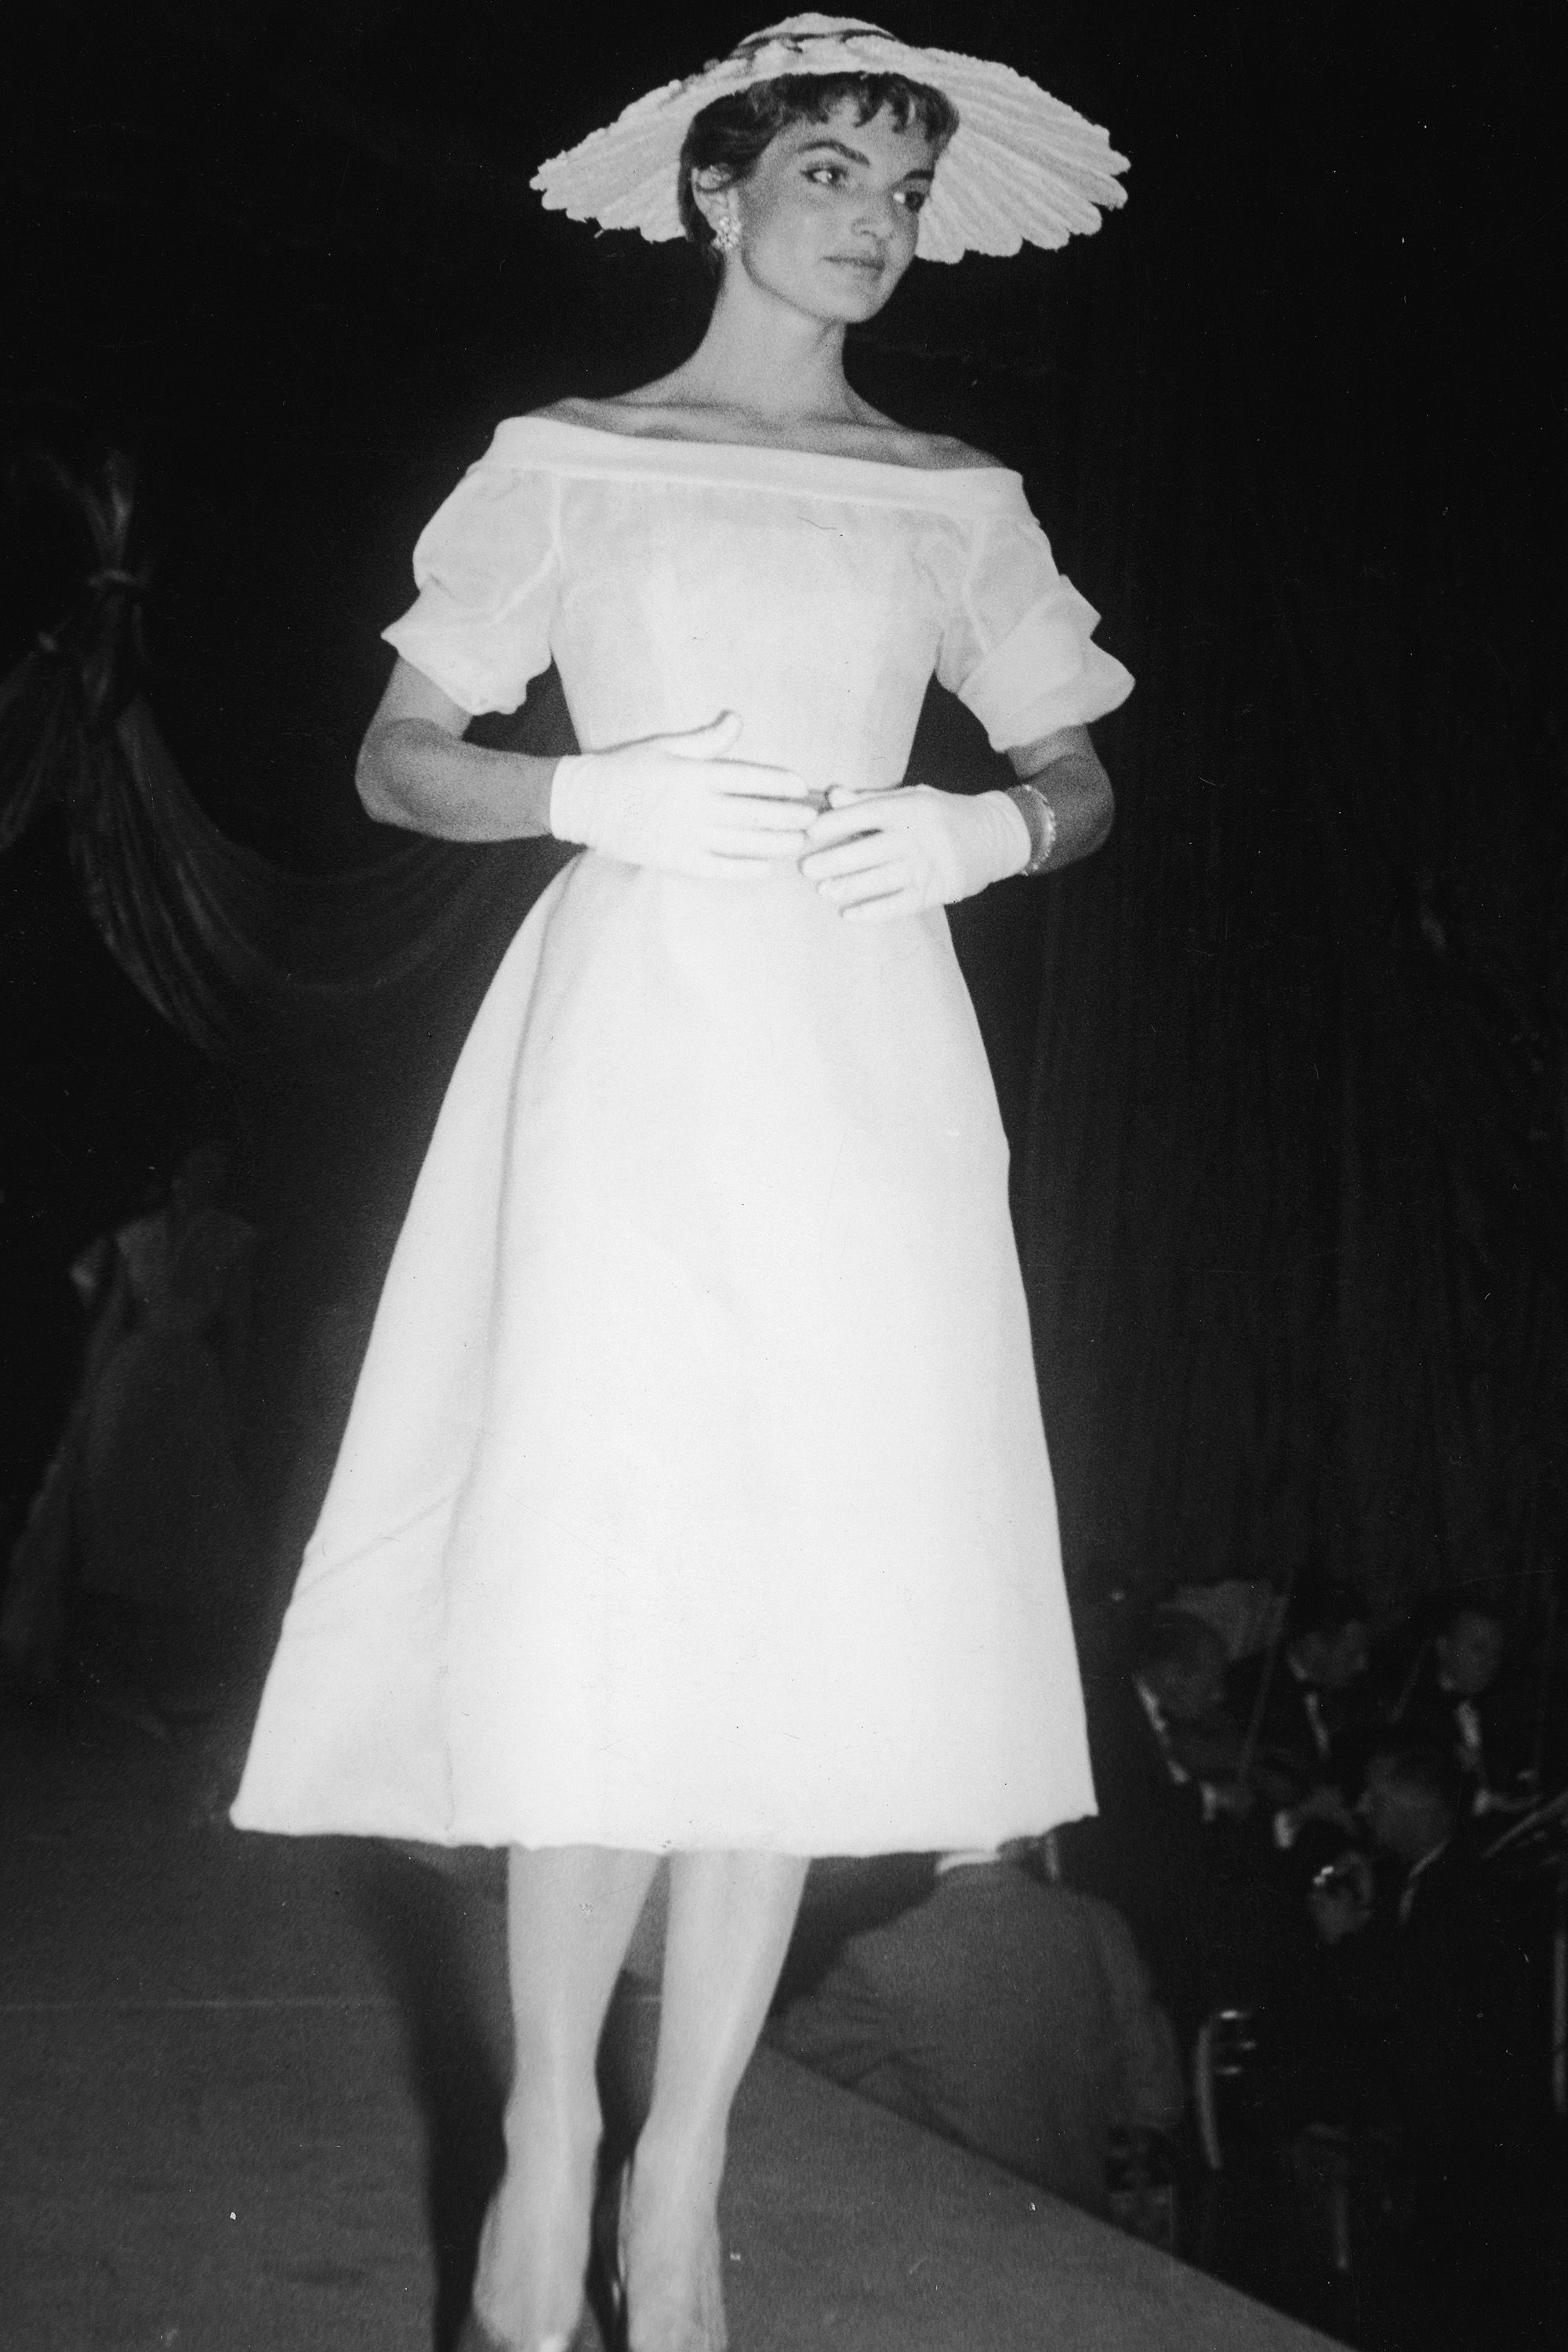 hbz jackie kennedy 1954 tyimages